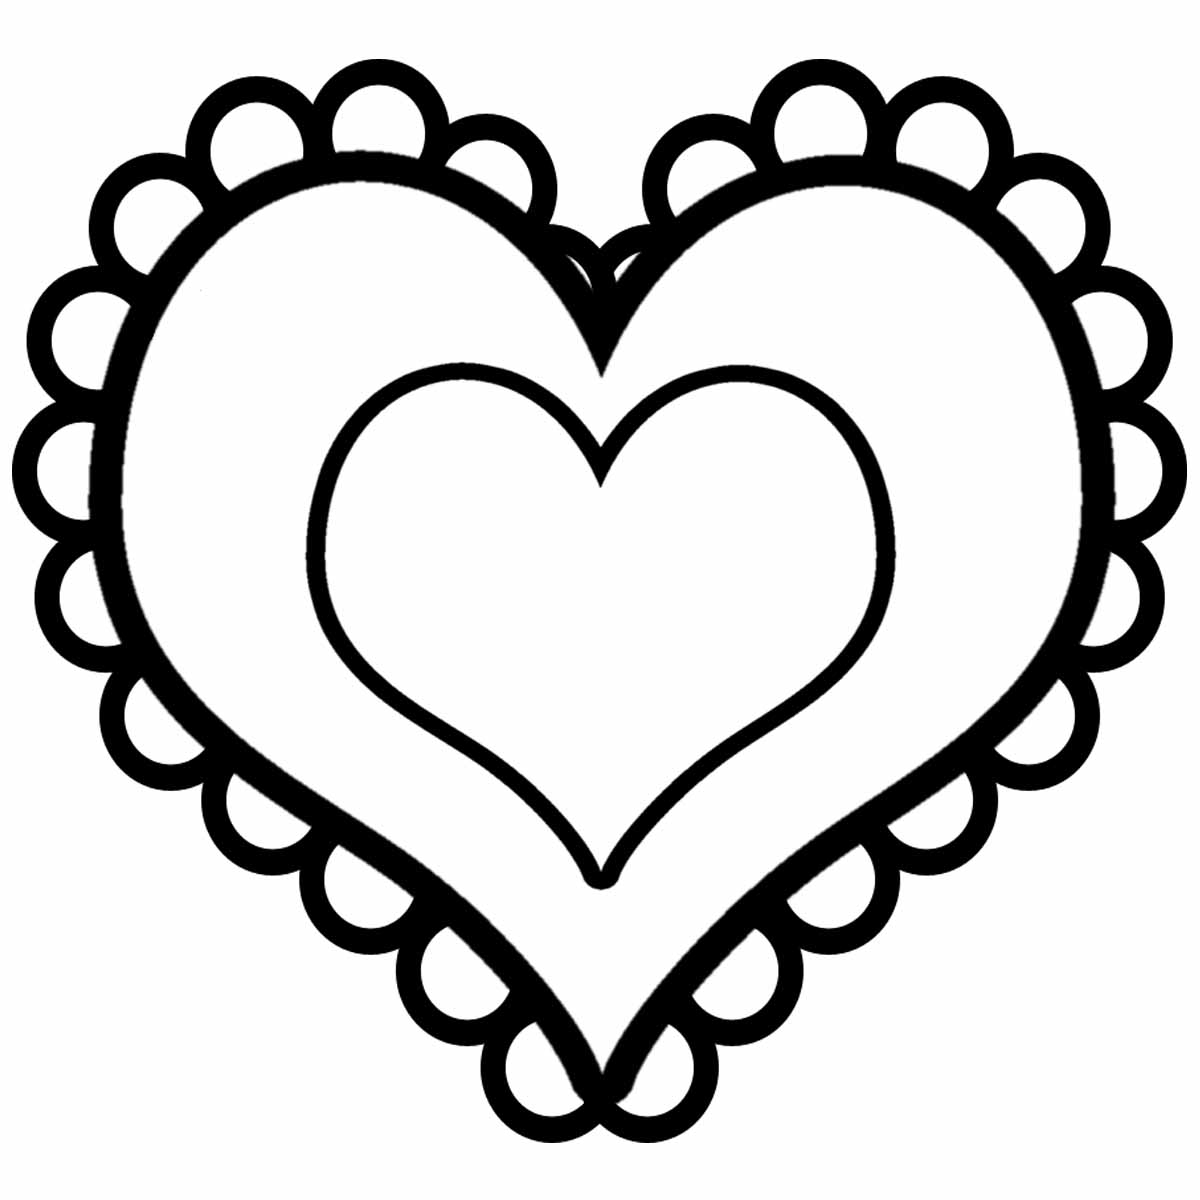 coloring pages with hearts free printable heart coloring pages for kids with coloring hearts pages